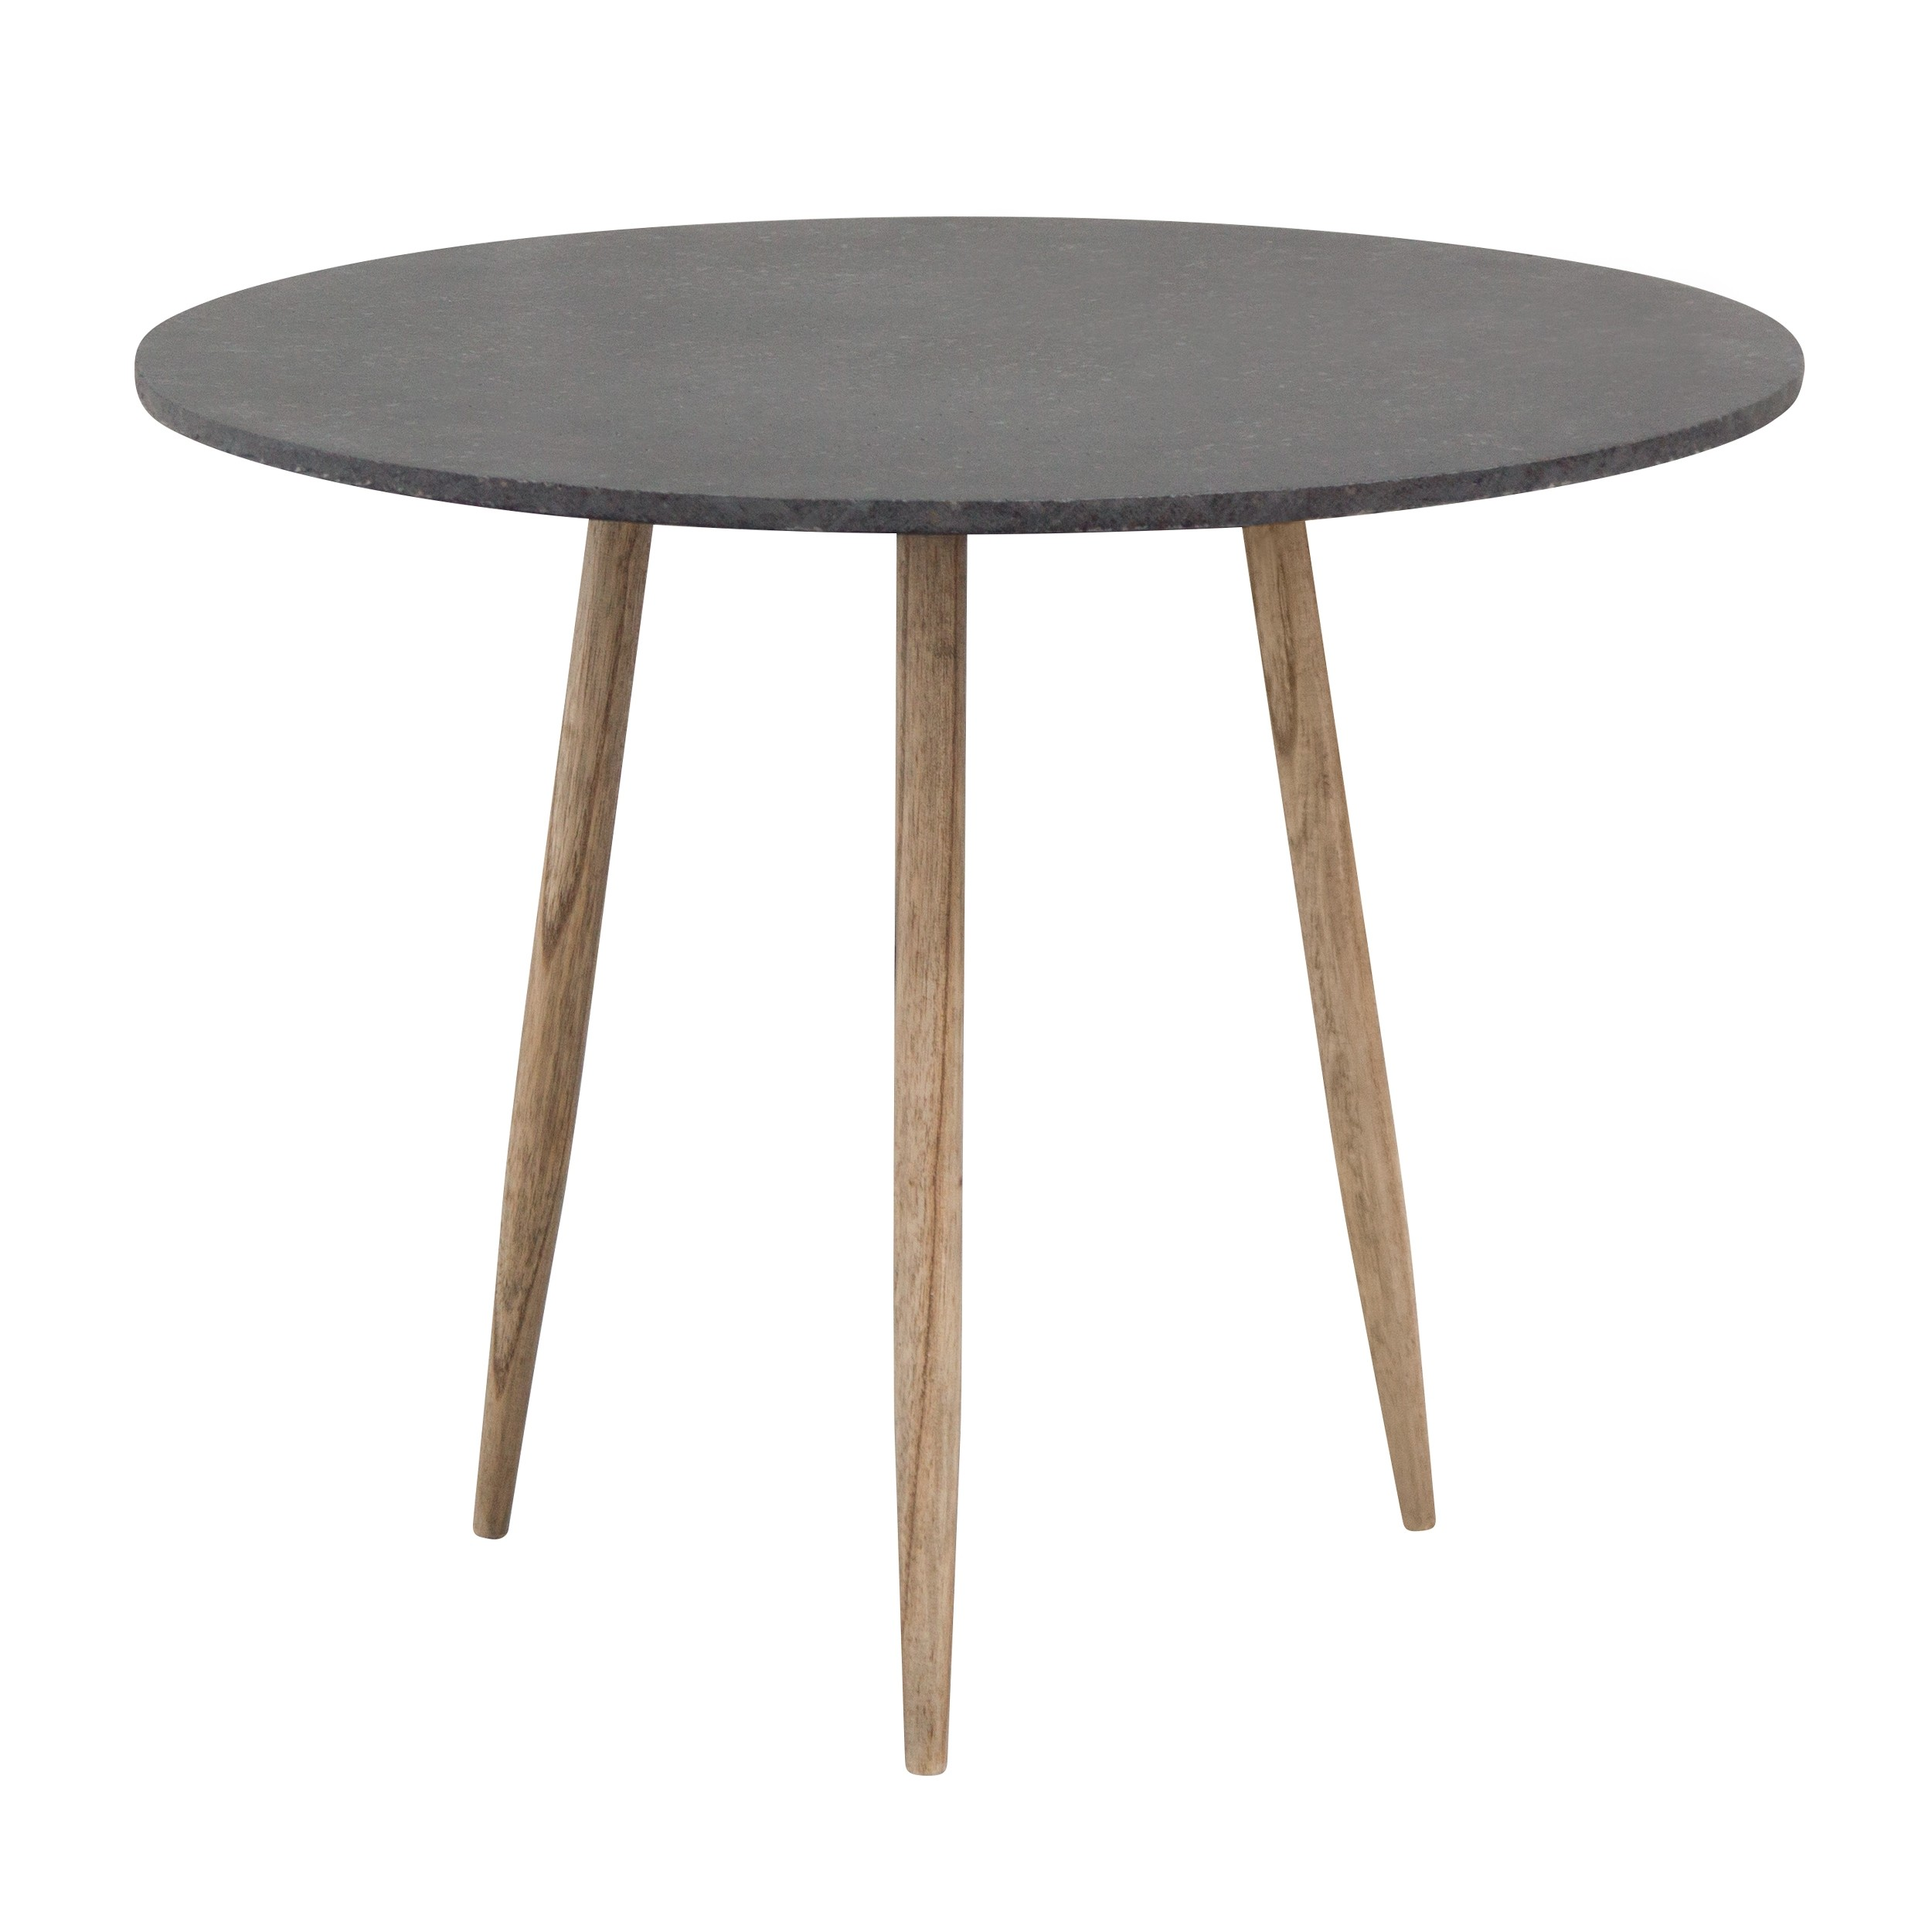 acheter table ronde basse d appoint